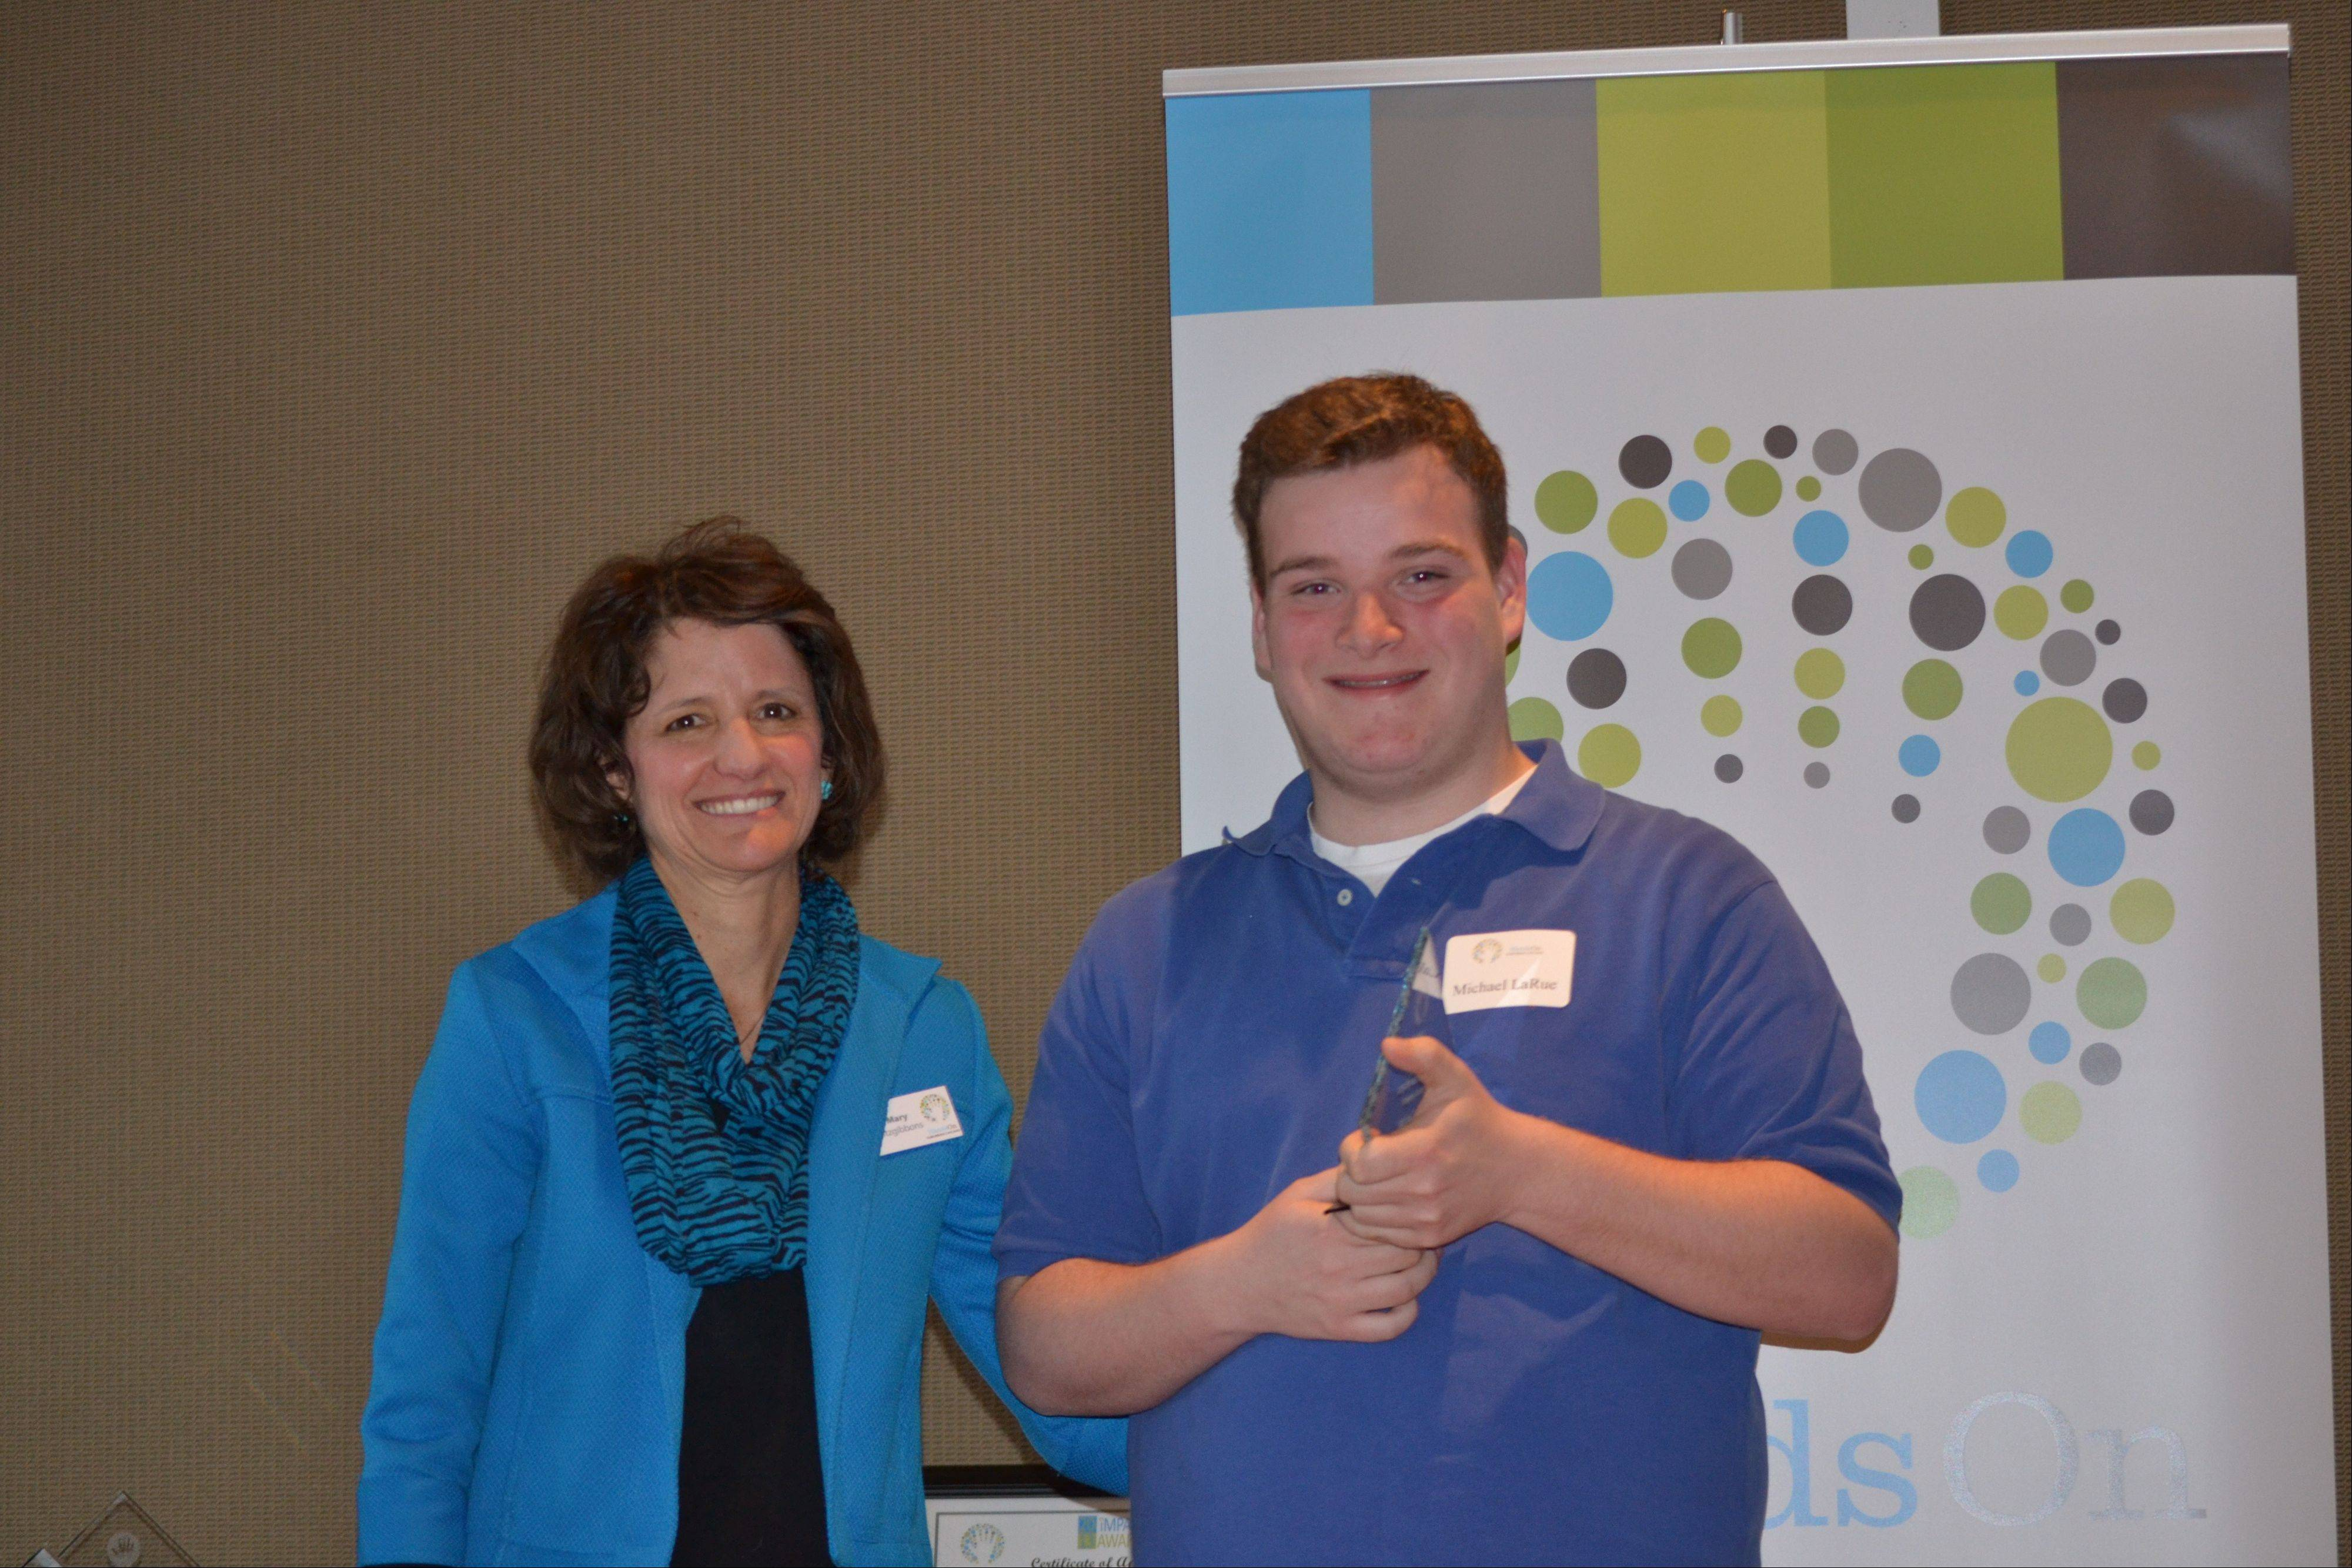 Michael LaRue receives his Emerging Young Leader award from Mary Fitzgibbons, executive director of HandsOn Suburban Chicago.